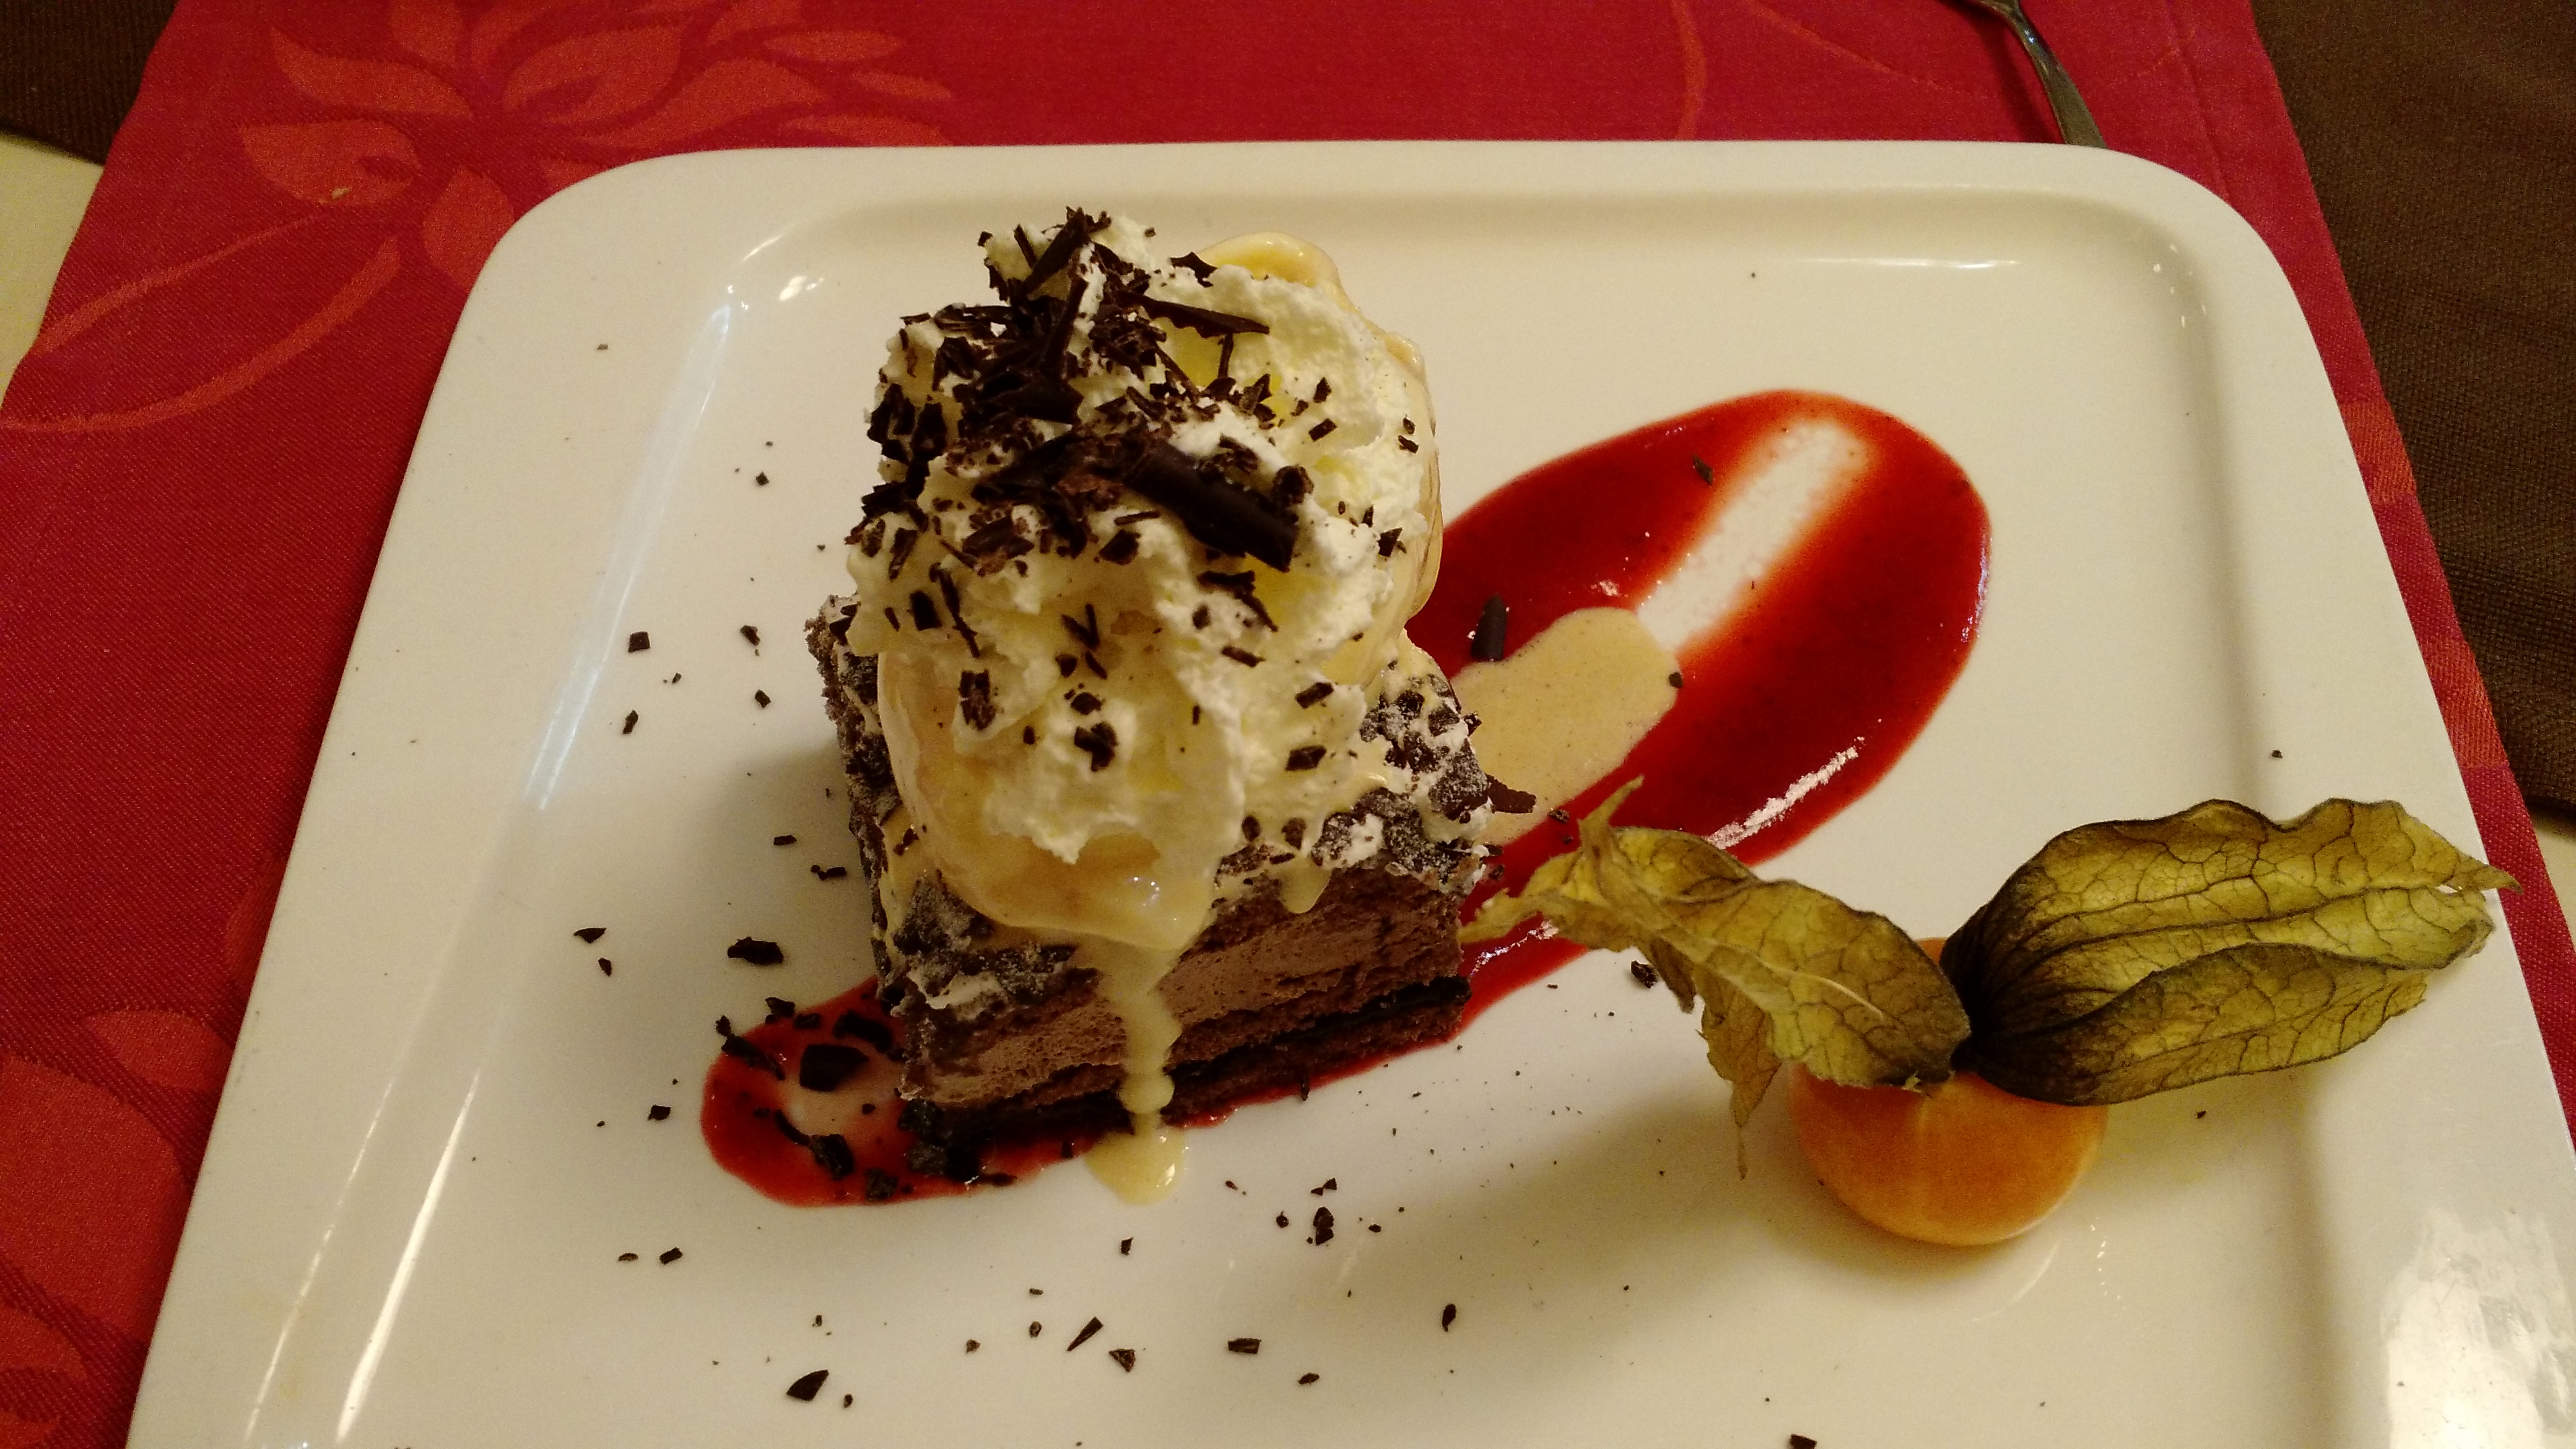 What is a fairly easy dessert to make from a Spanish speaking country?